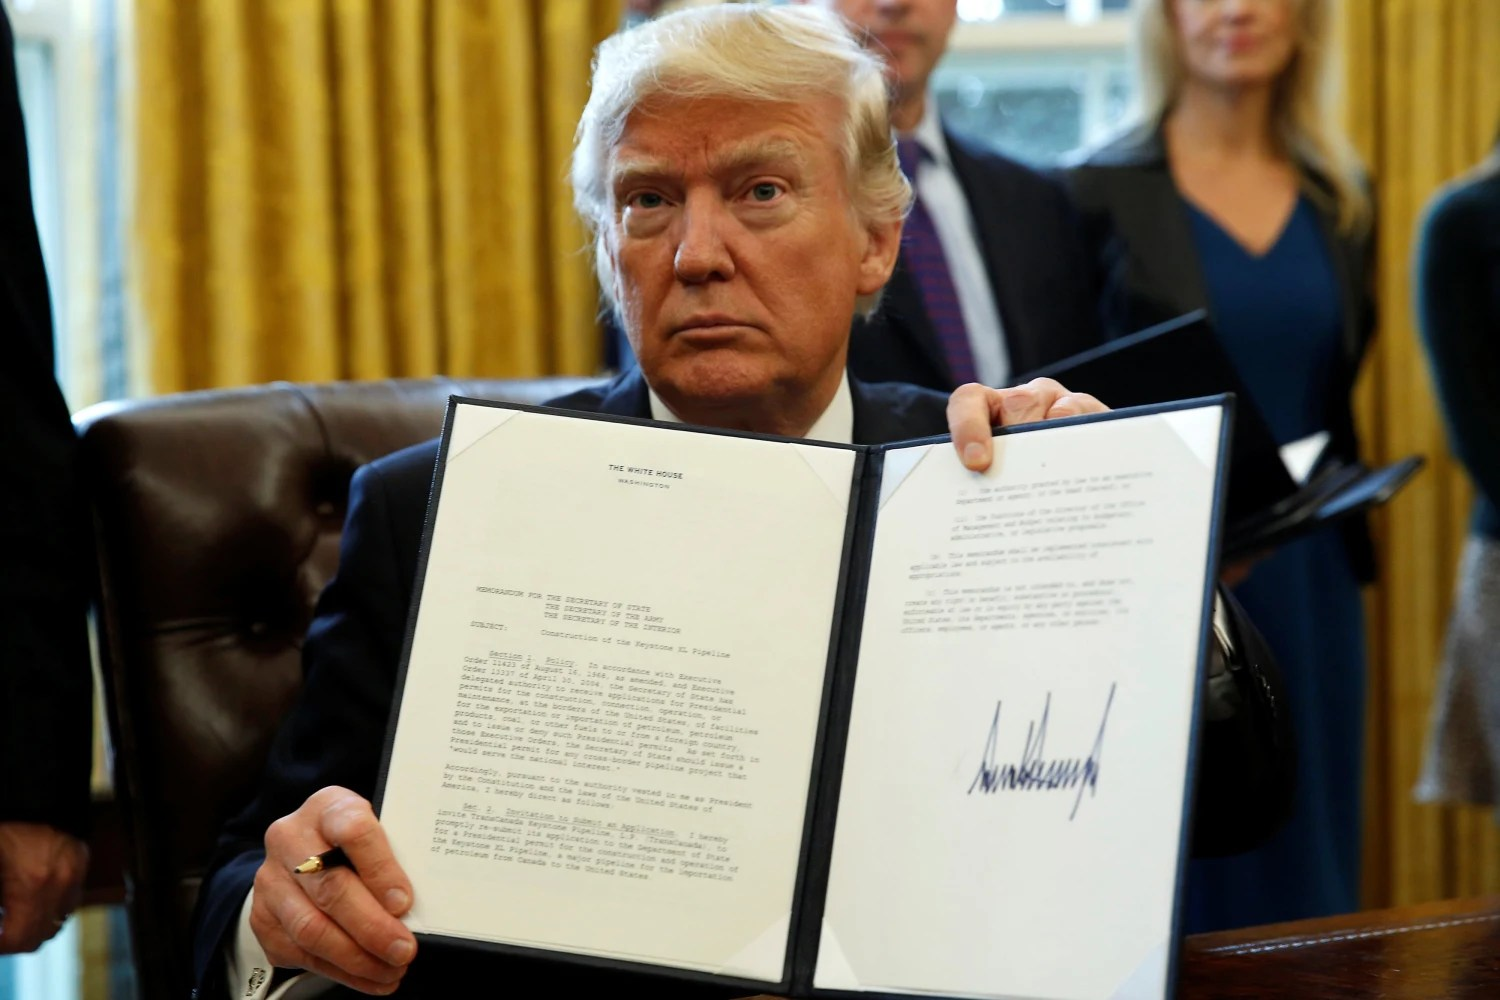 Here S The Full List Of Donald Trump S Executive Orders